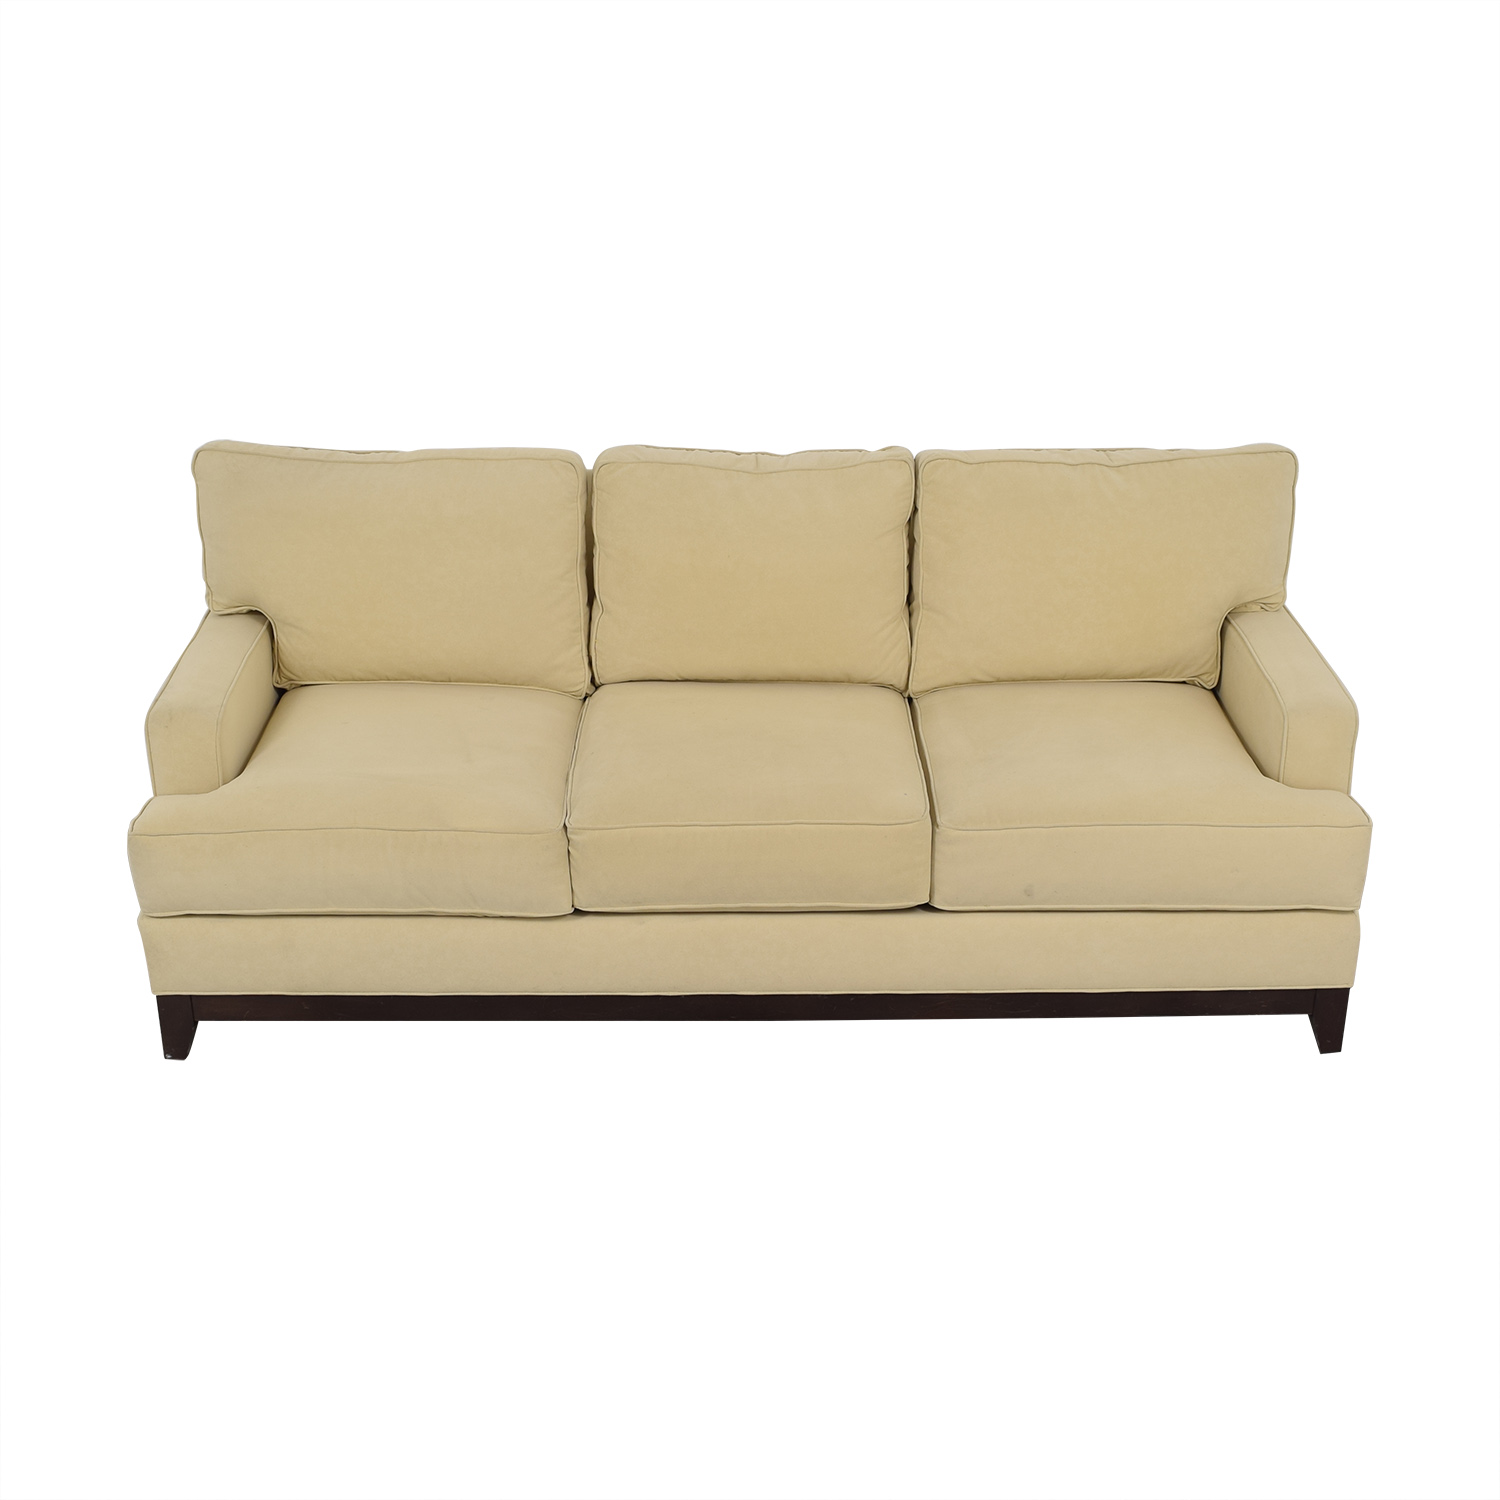 Ethan Allen Three Cushion Sofa / Sofas